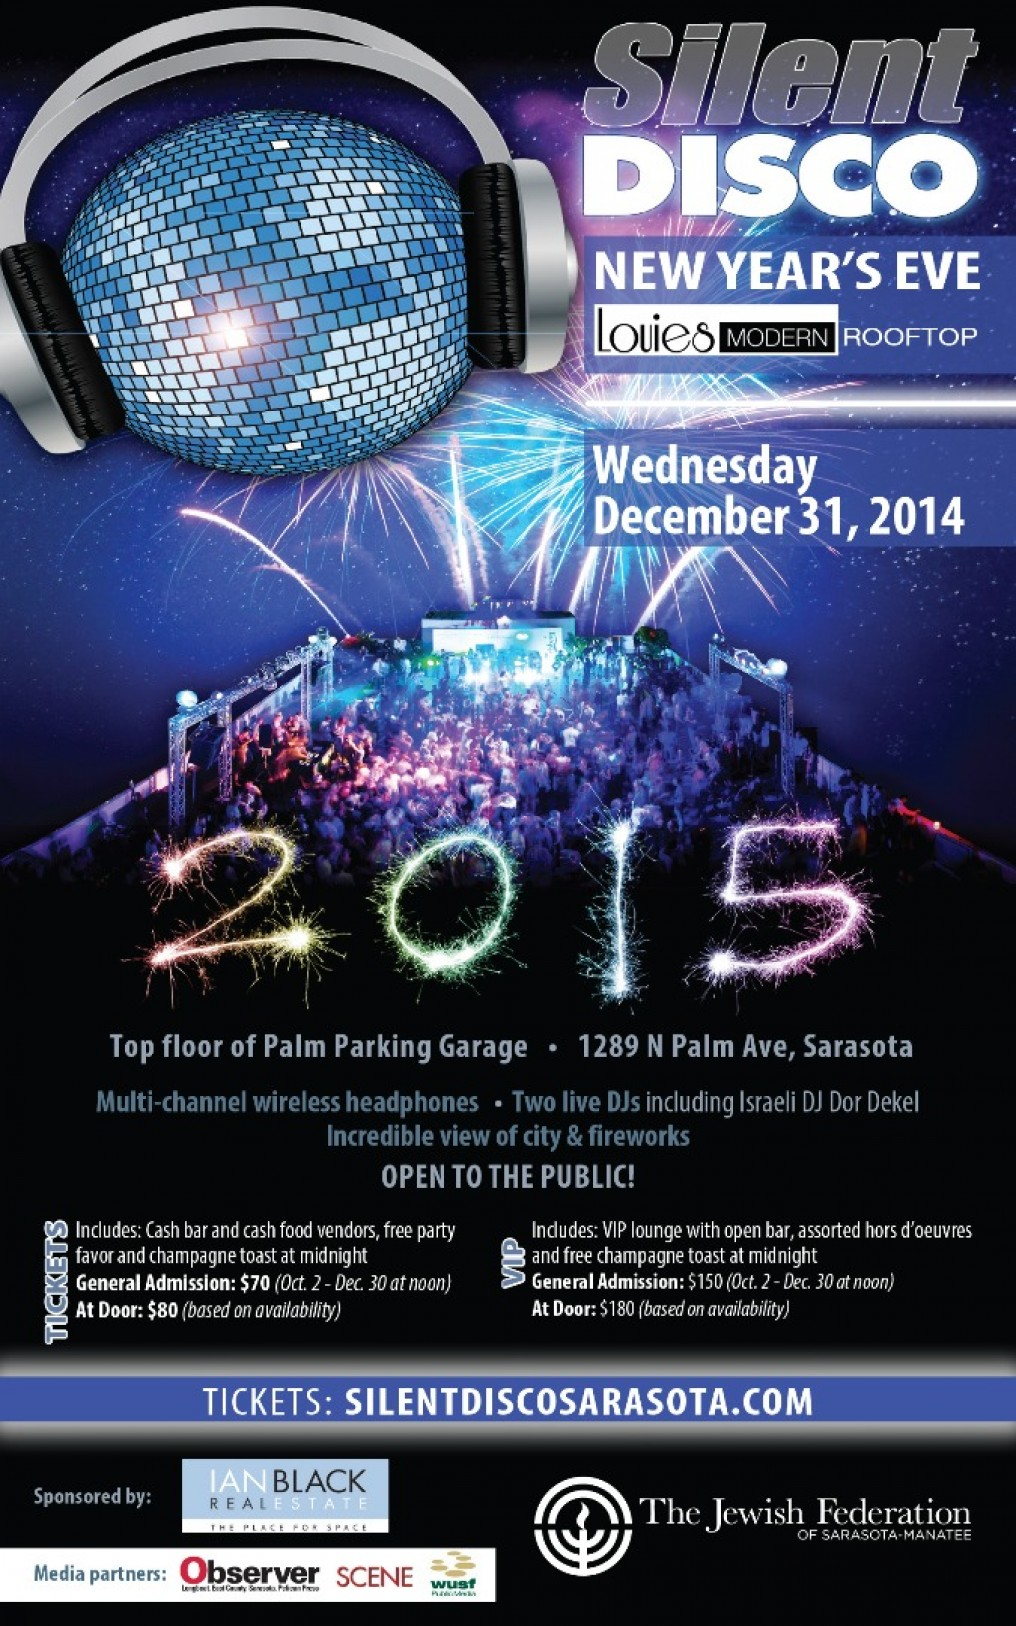 Silent Disco New Year's Eve Party in Sarasota, Florida